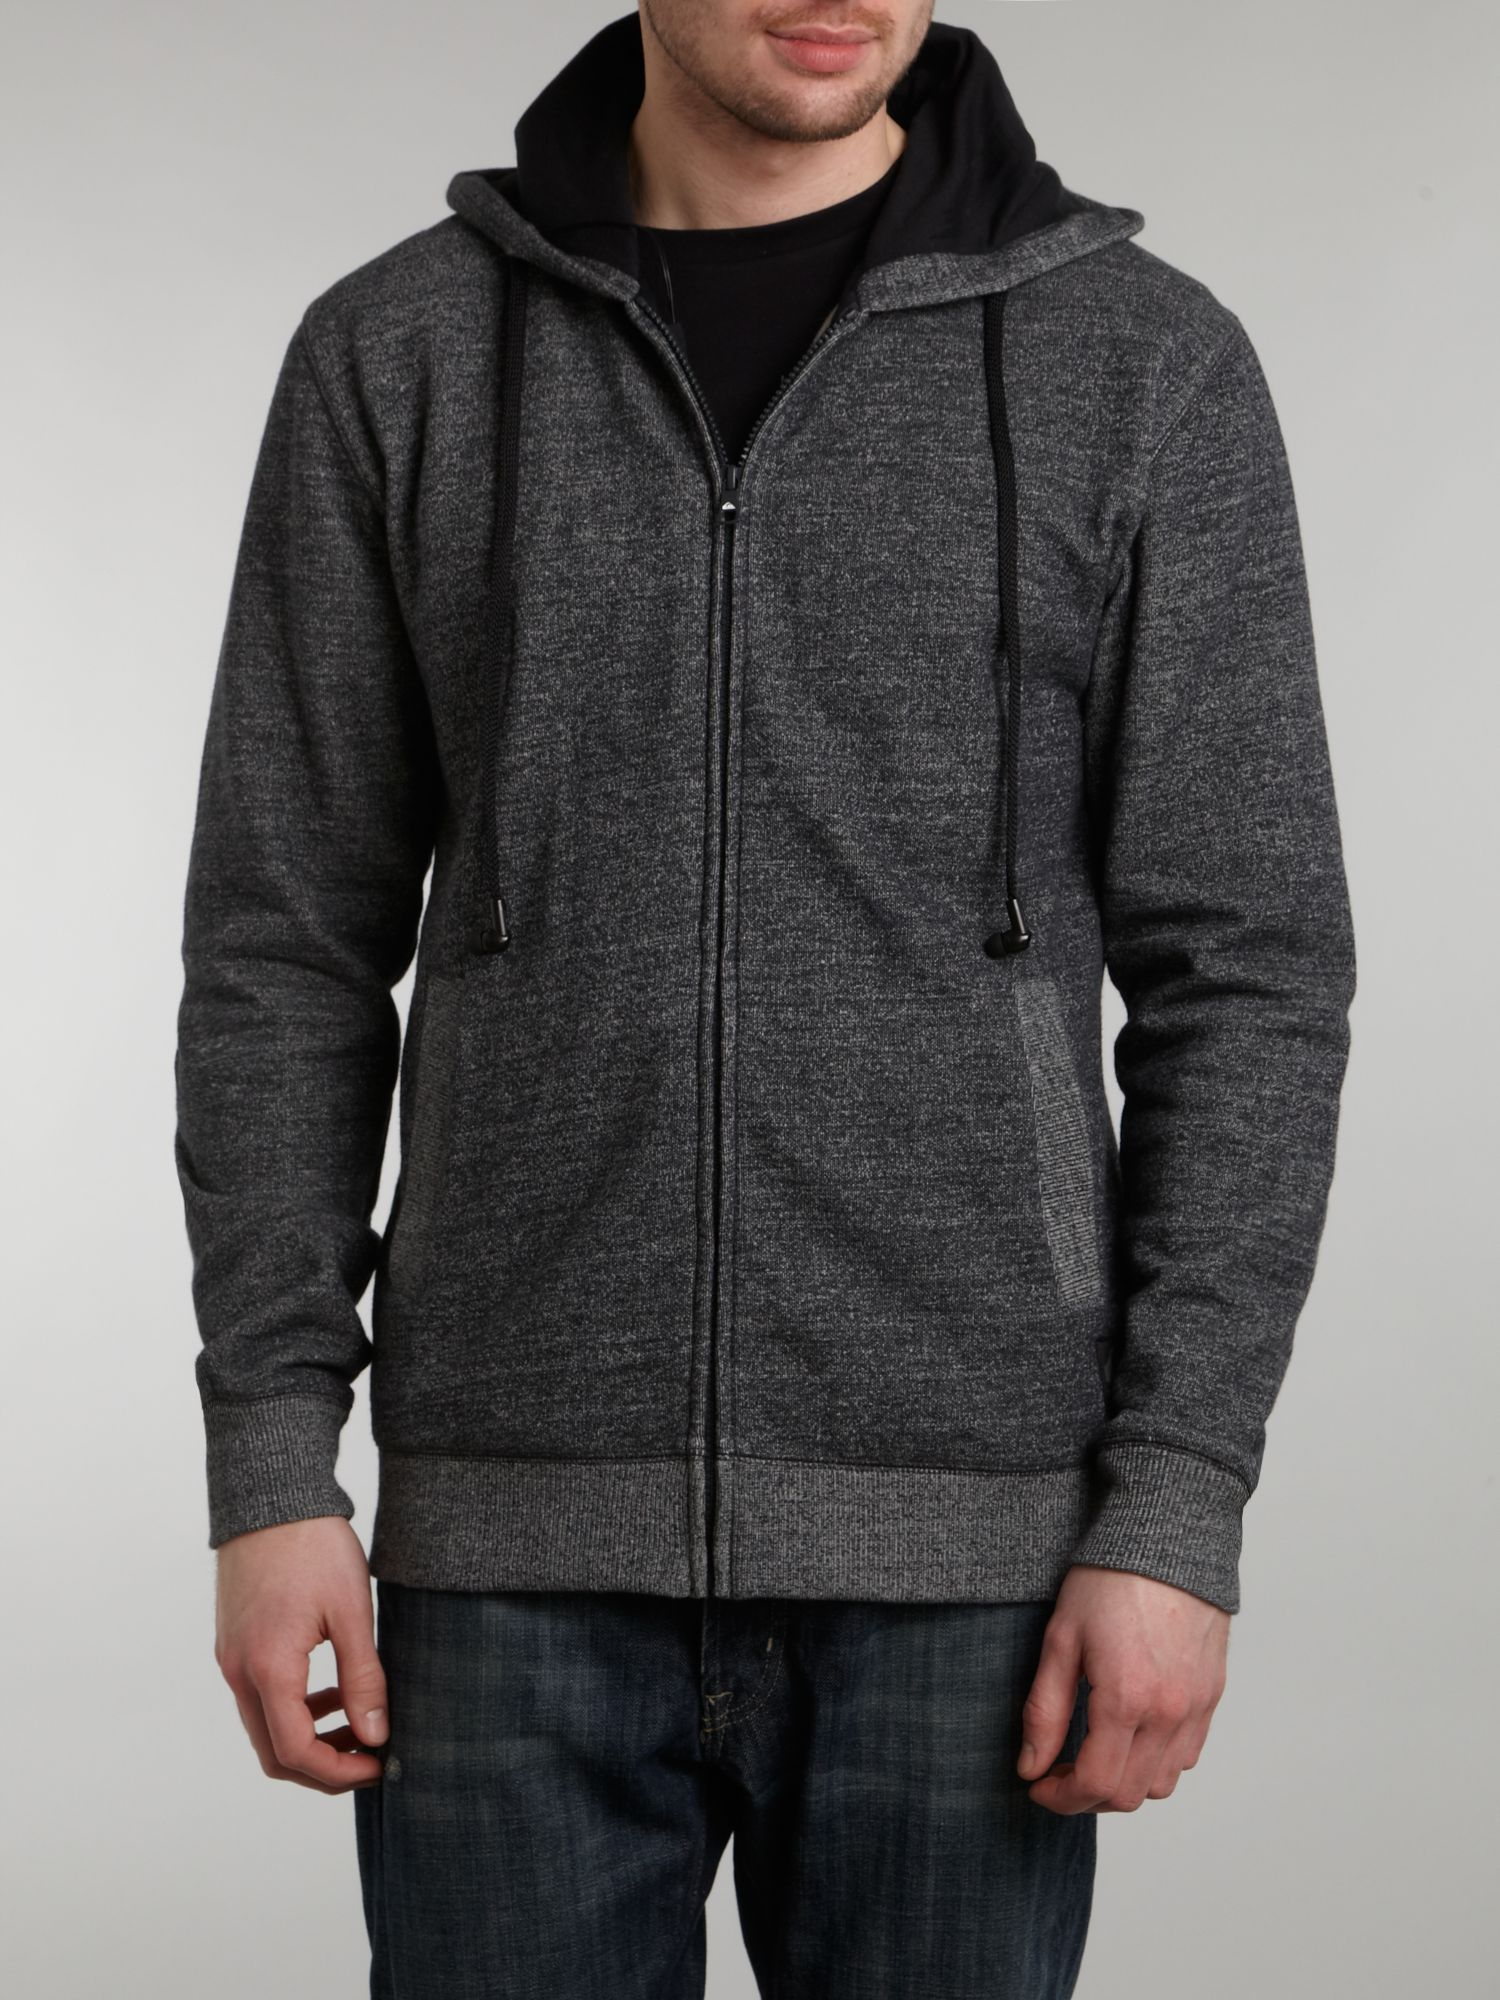 Full zipped hoody with headphones